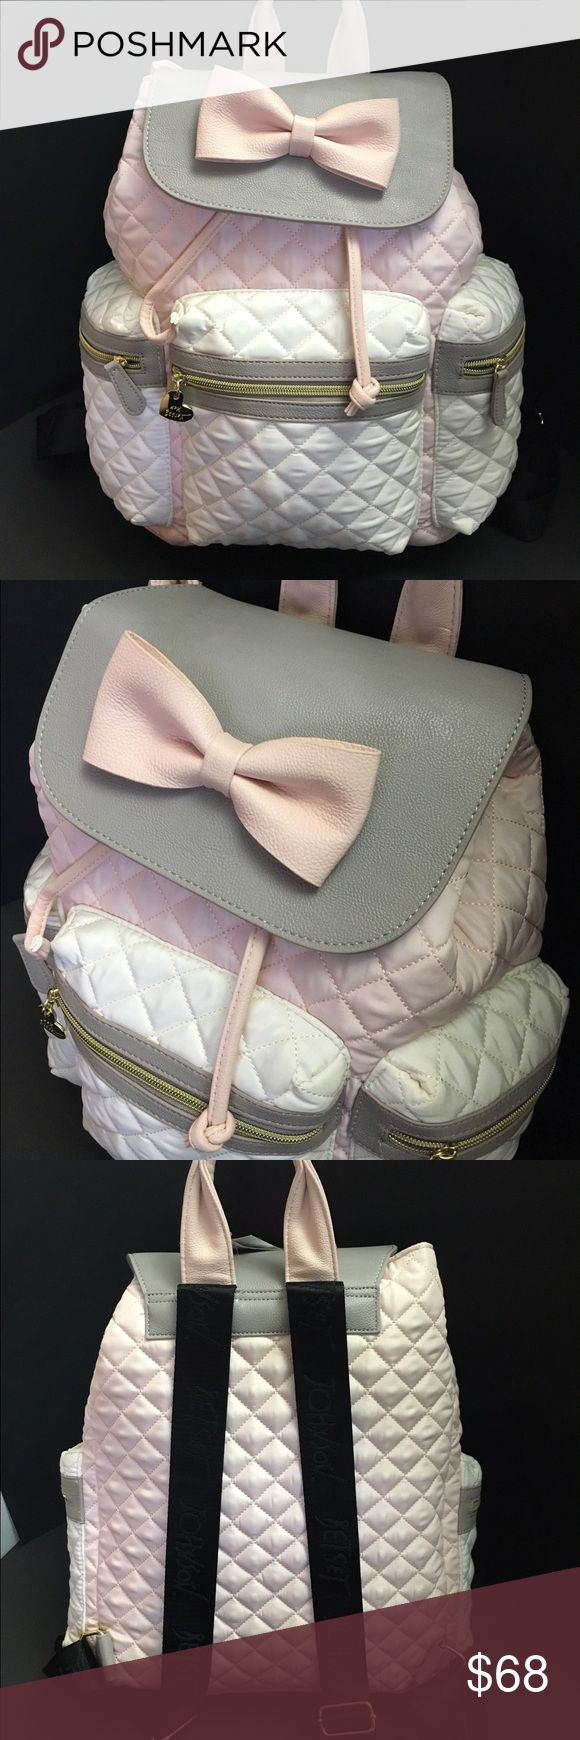 Betsey Johnson quilted backpack bow pink grey Betsey Johnson quilted backpack blush pink with grey and white/cream accents. Gold toned hardware. Adjustable backpack straps. Pink bow in front super cute🎀🎀 Betsey Johnson Bags Backpacks